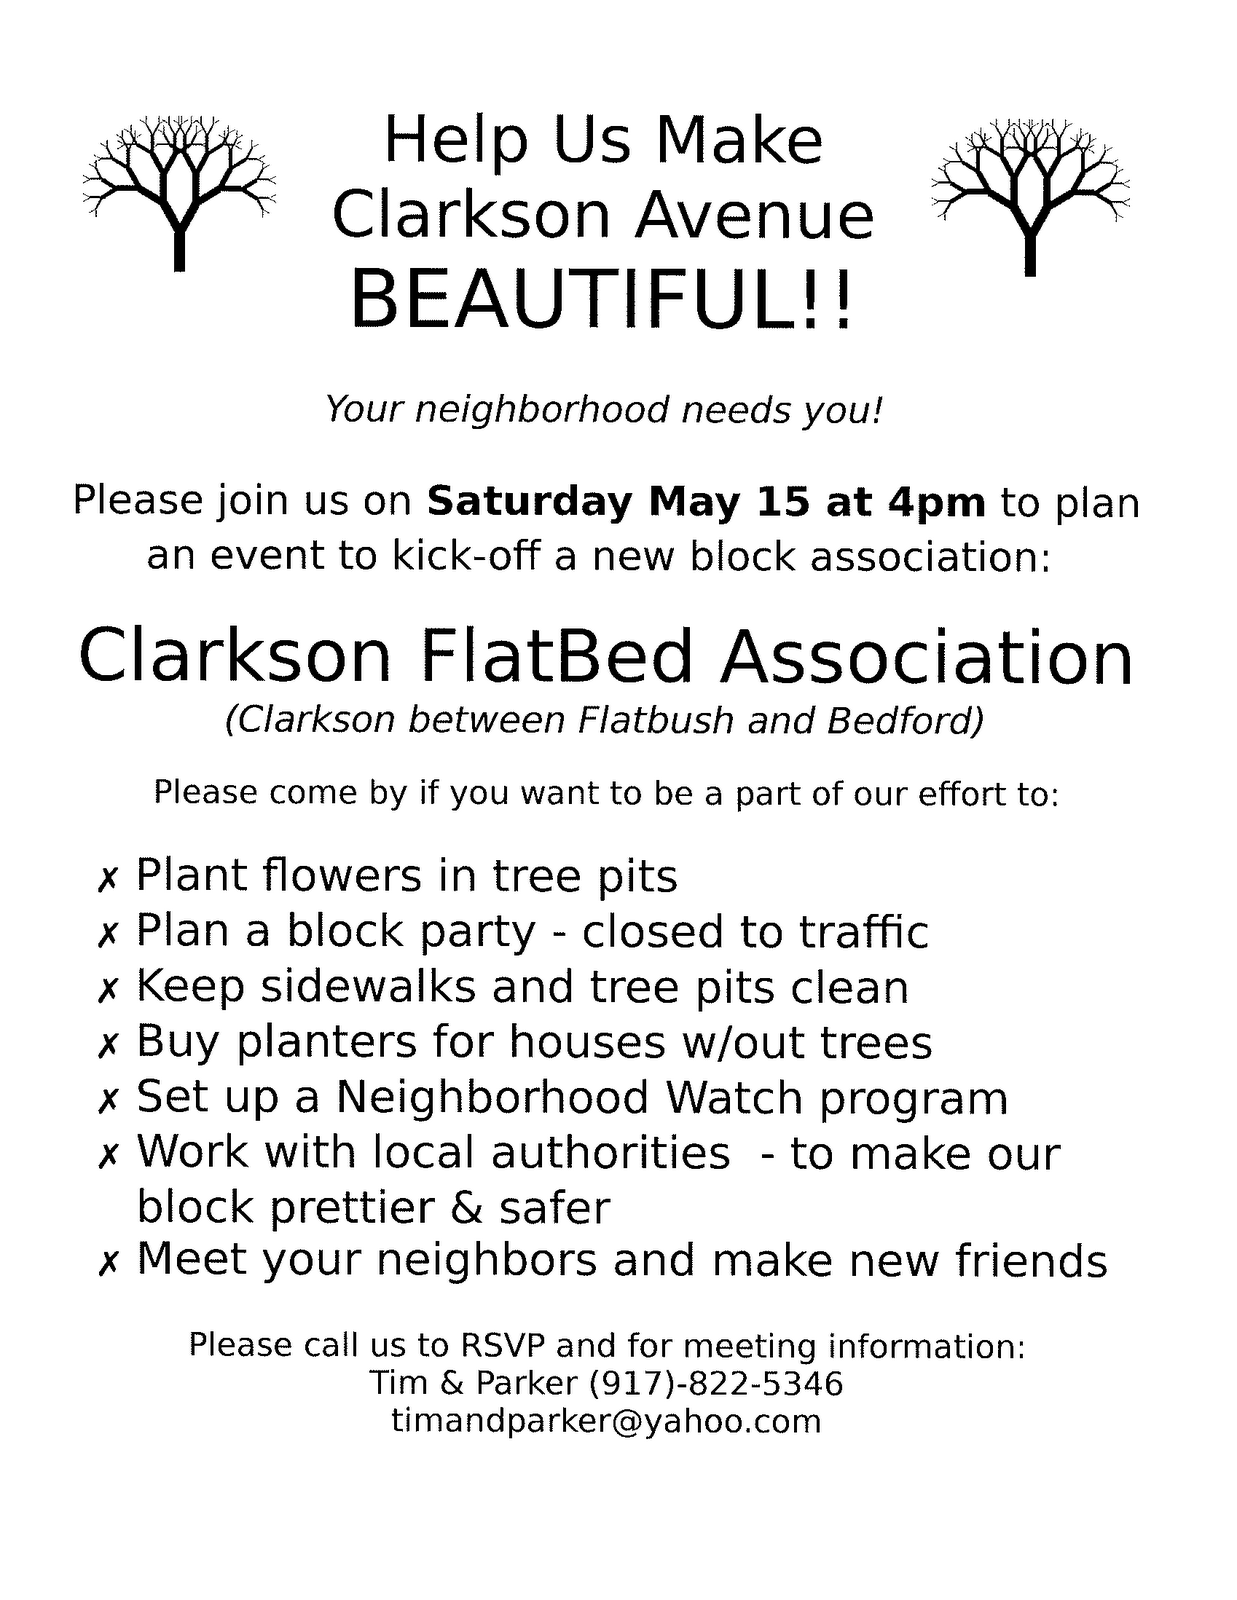 Mrs. Clarkson FlatBed and I would like to welcome you to our home this  Saturday, May 15 at tea time (4PM) to plan and create a block association  for ...